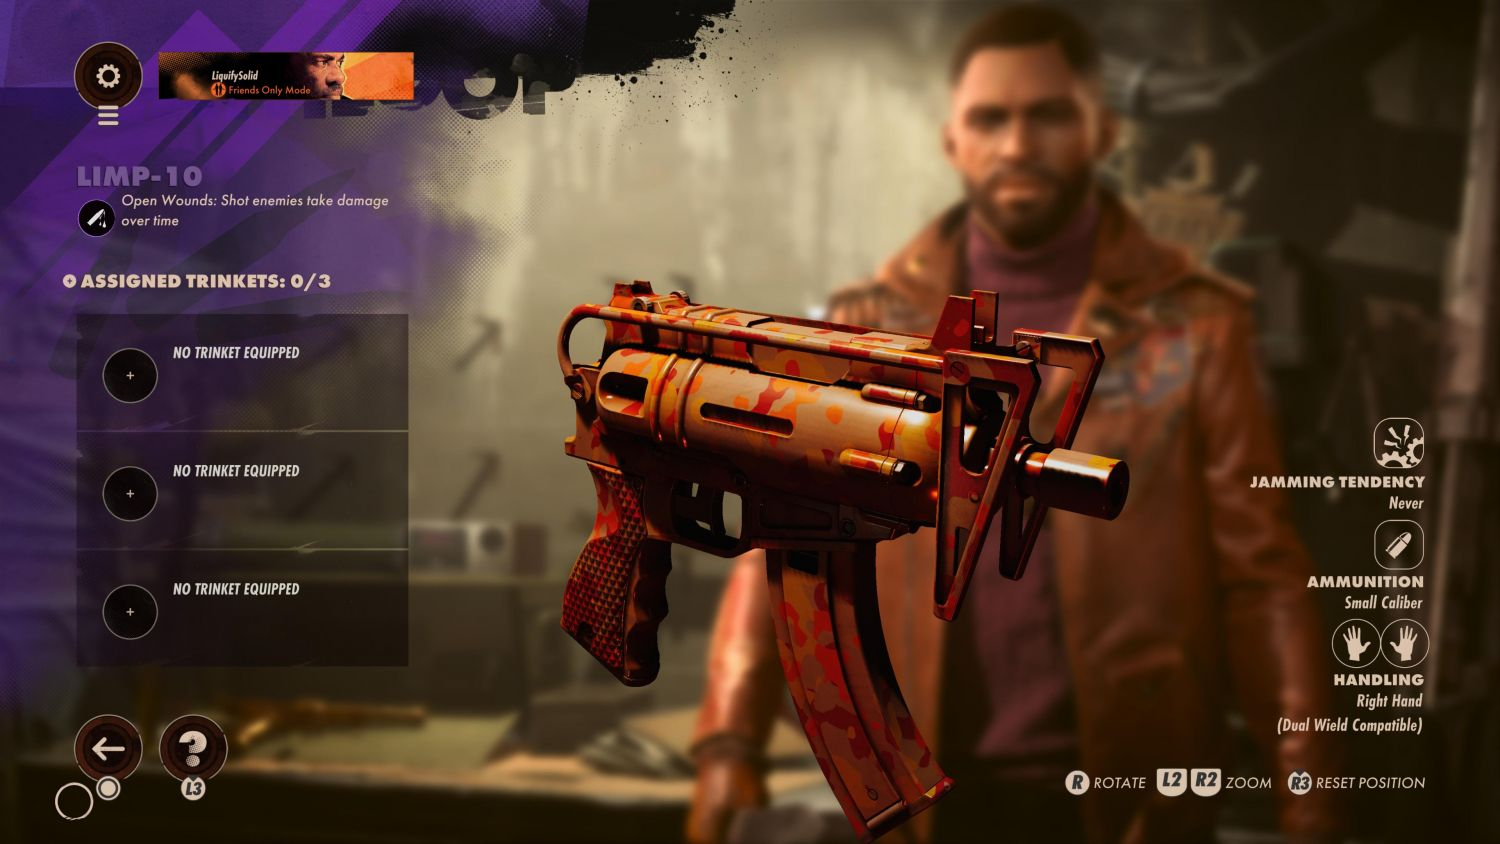 The Best Weapons And Slabs In Deathloop You Need To Know - The Limp-10